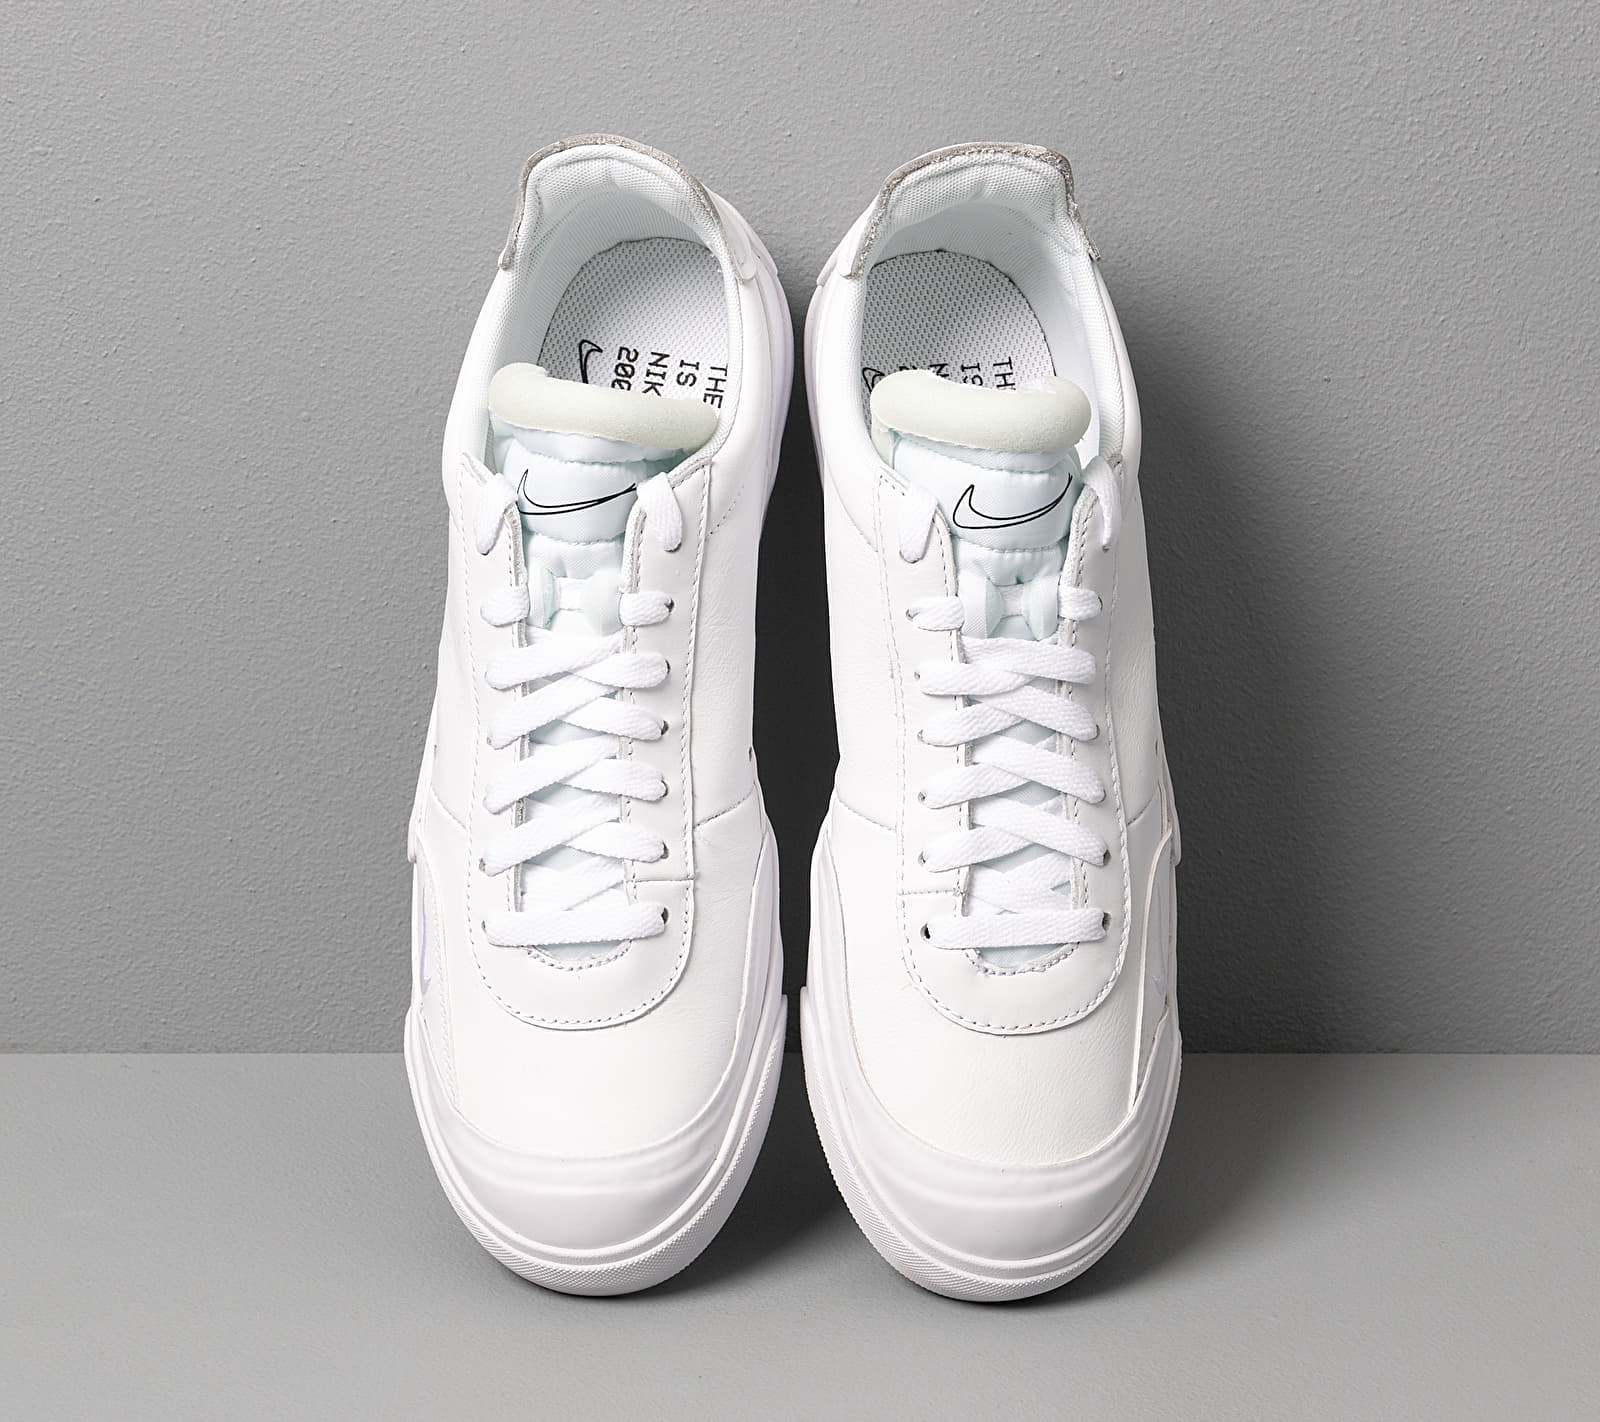 Nike Drop-Type Premium White/ Black